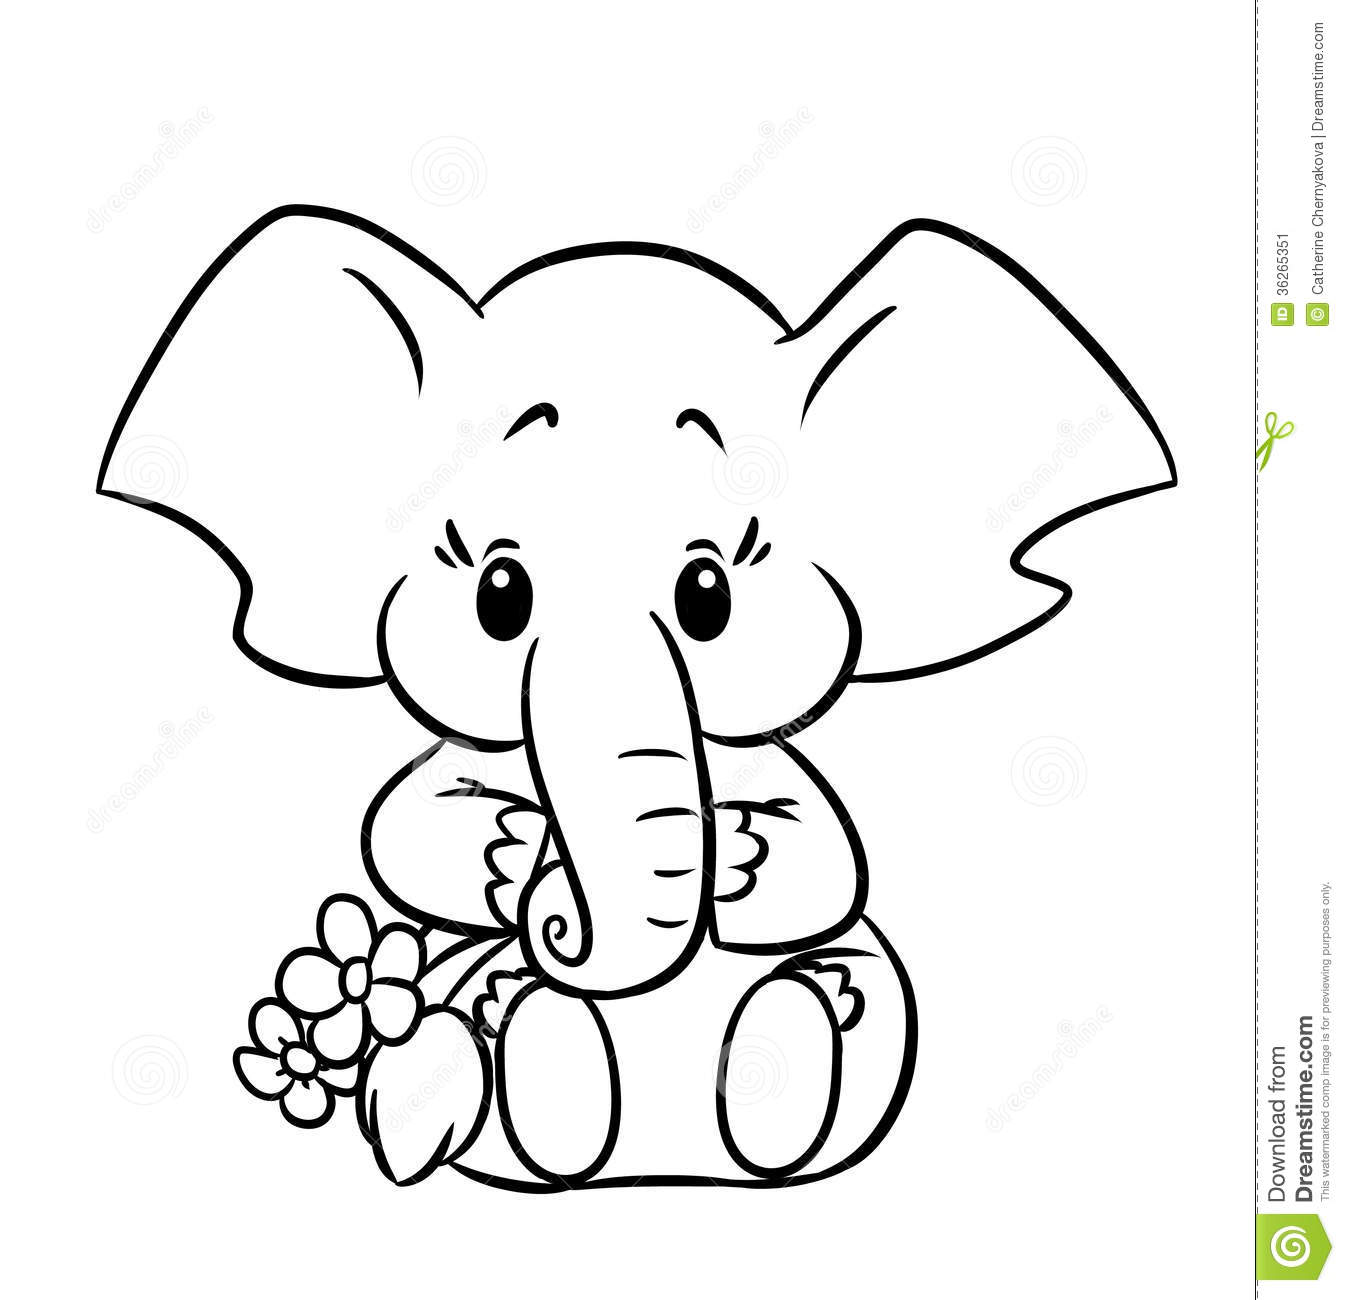 baby elephant elephant coloring pages baby elephant coloring page wecoloringpagecom elephant pages elephant coloring baby